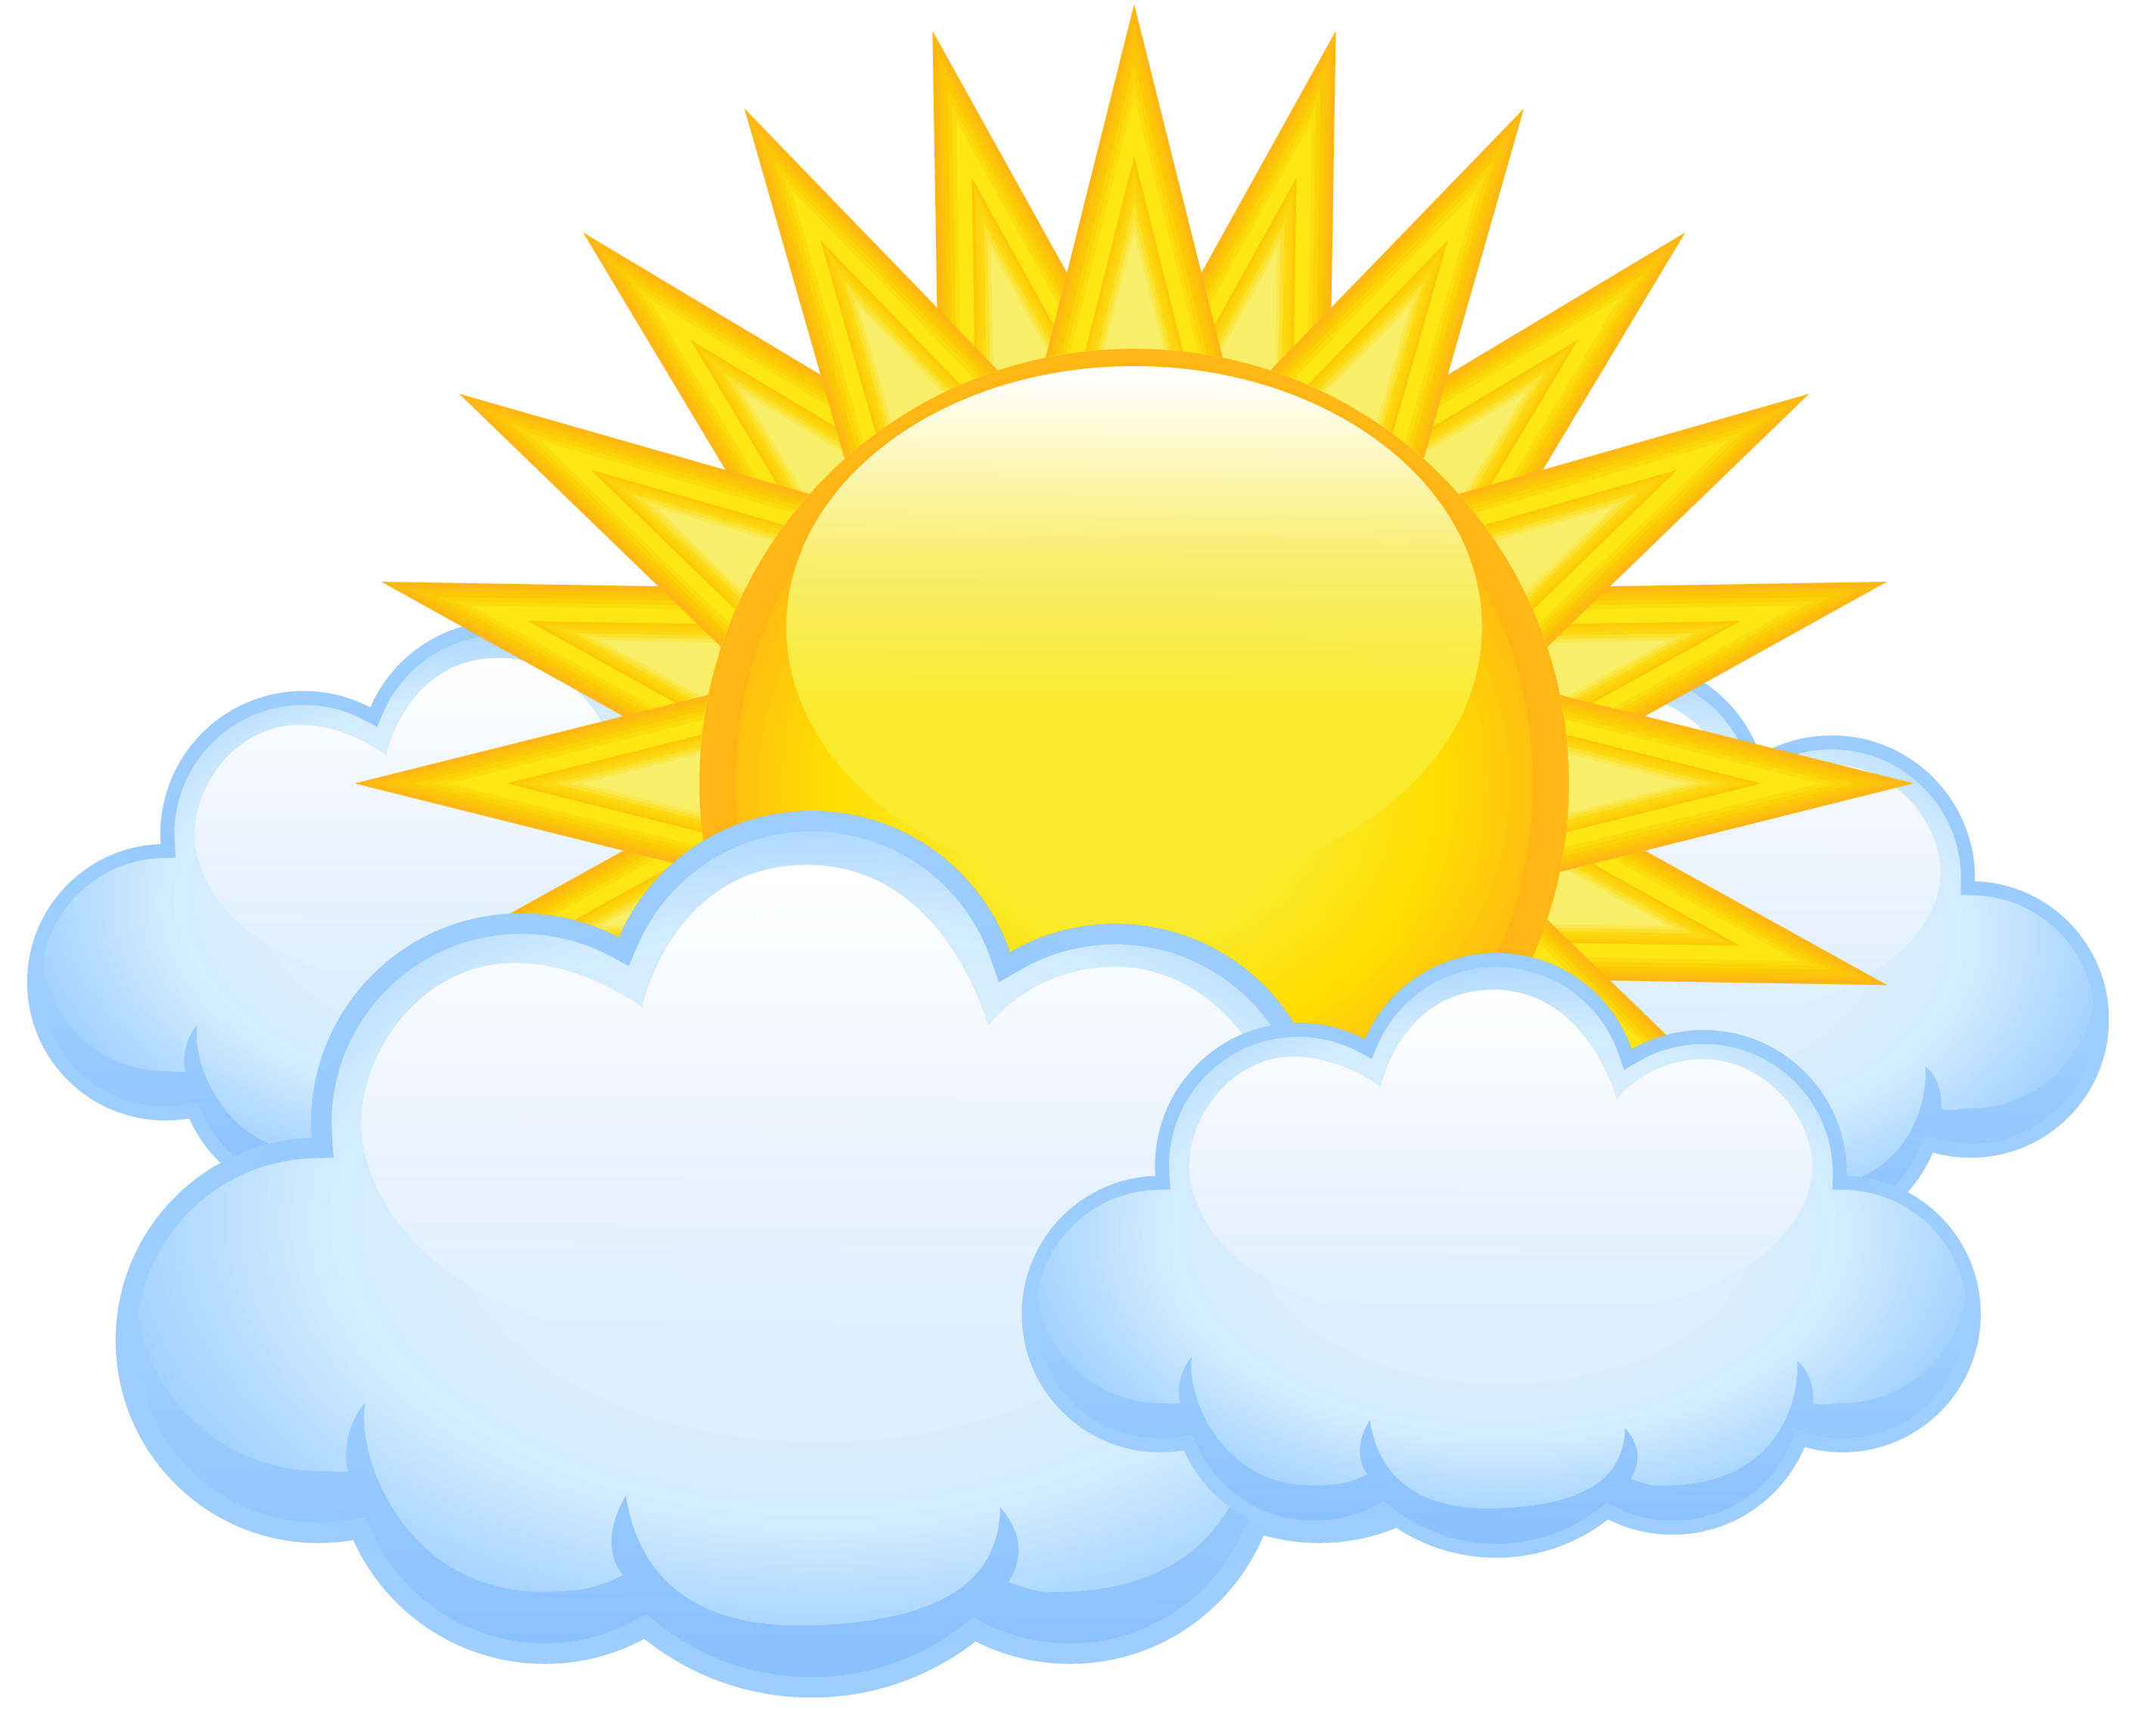 Cloud and sun clipart vector Sun with Clouds Transparent PNG Picture | Gallery Yopriceville ... vector